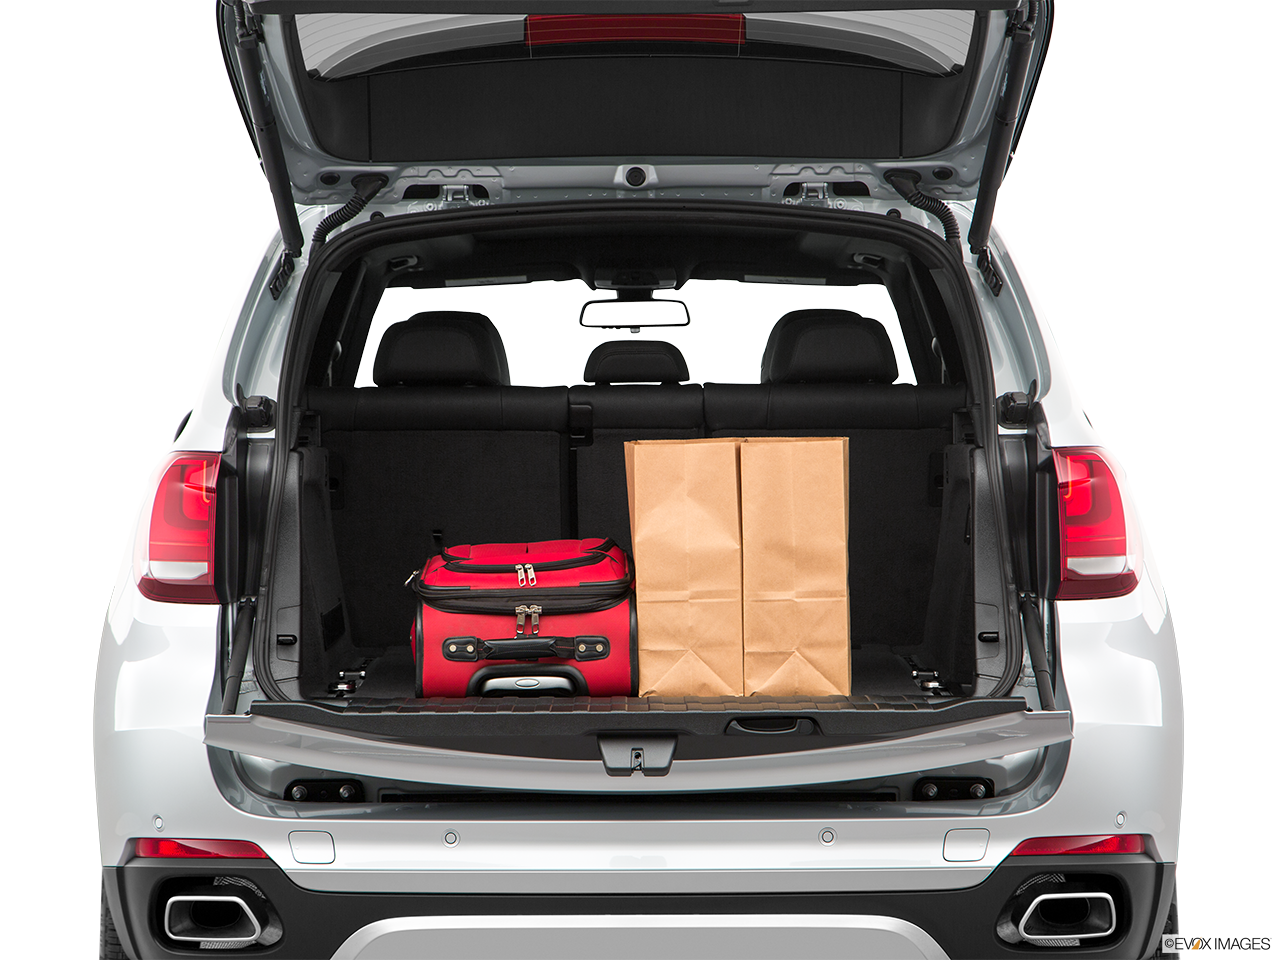 Trunk view of the BMW X5